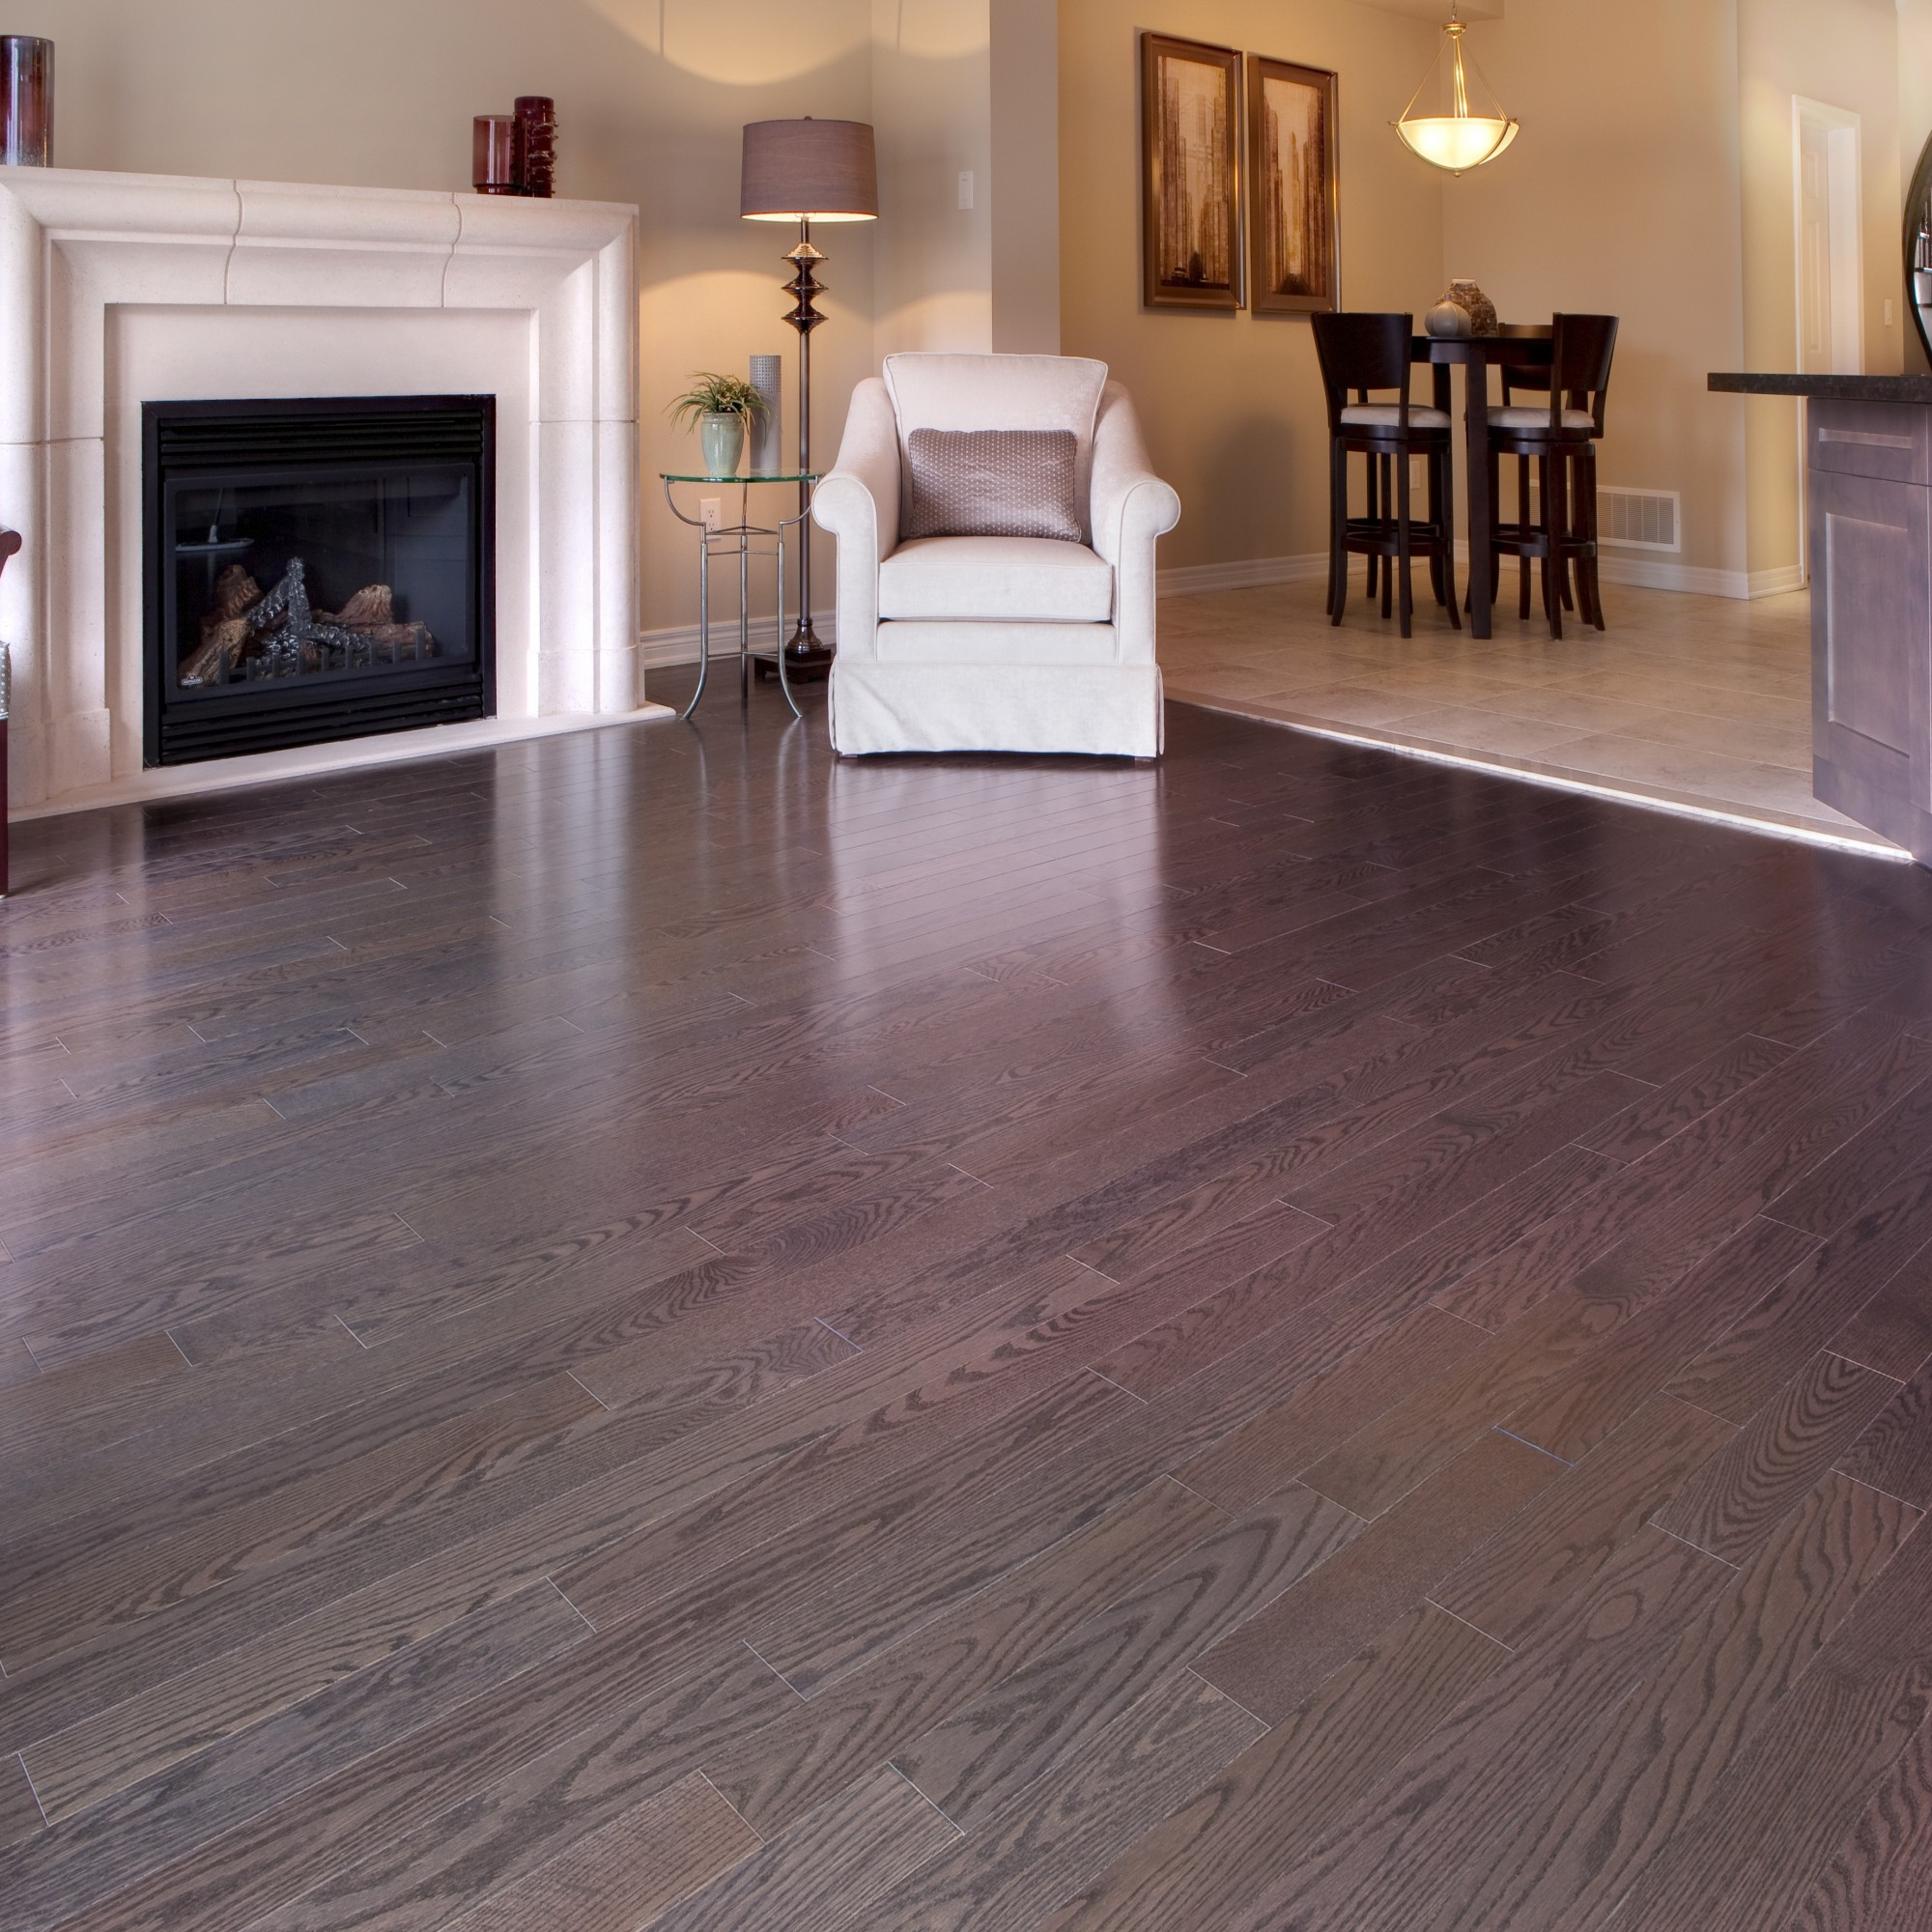 Smooth Red Oak Pewter Vintage Hardwood Flooring